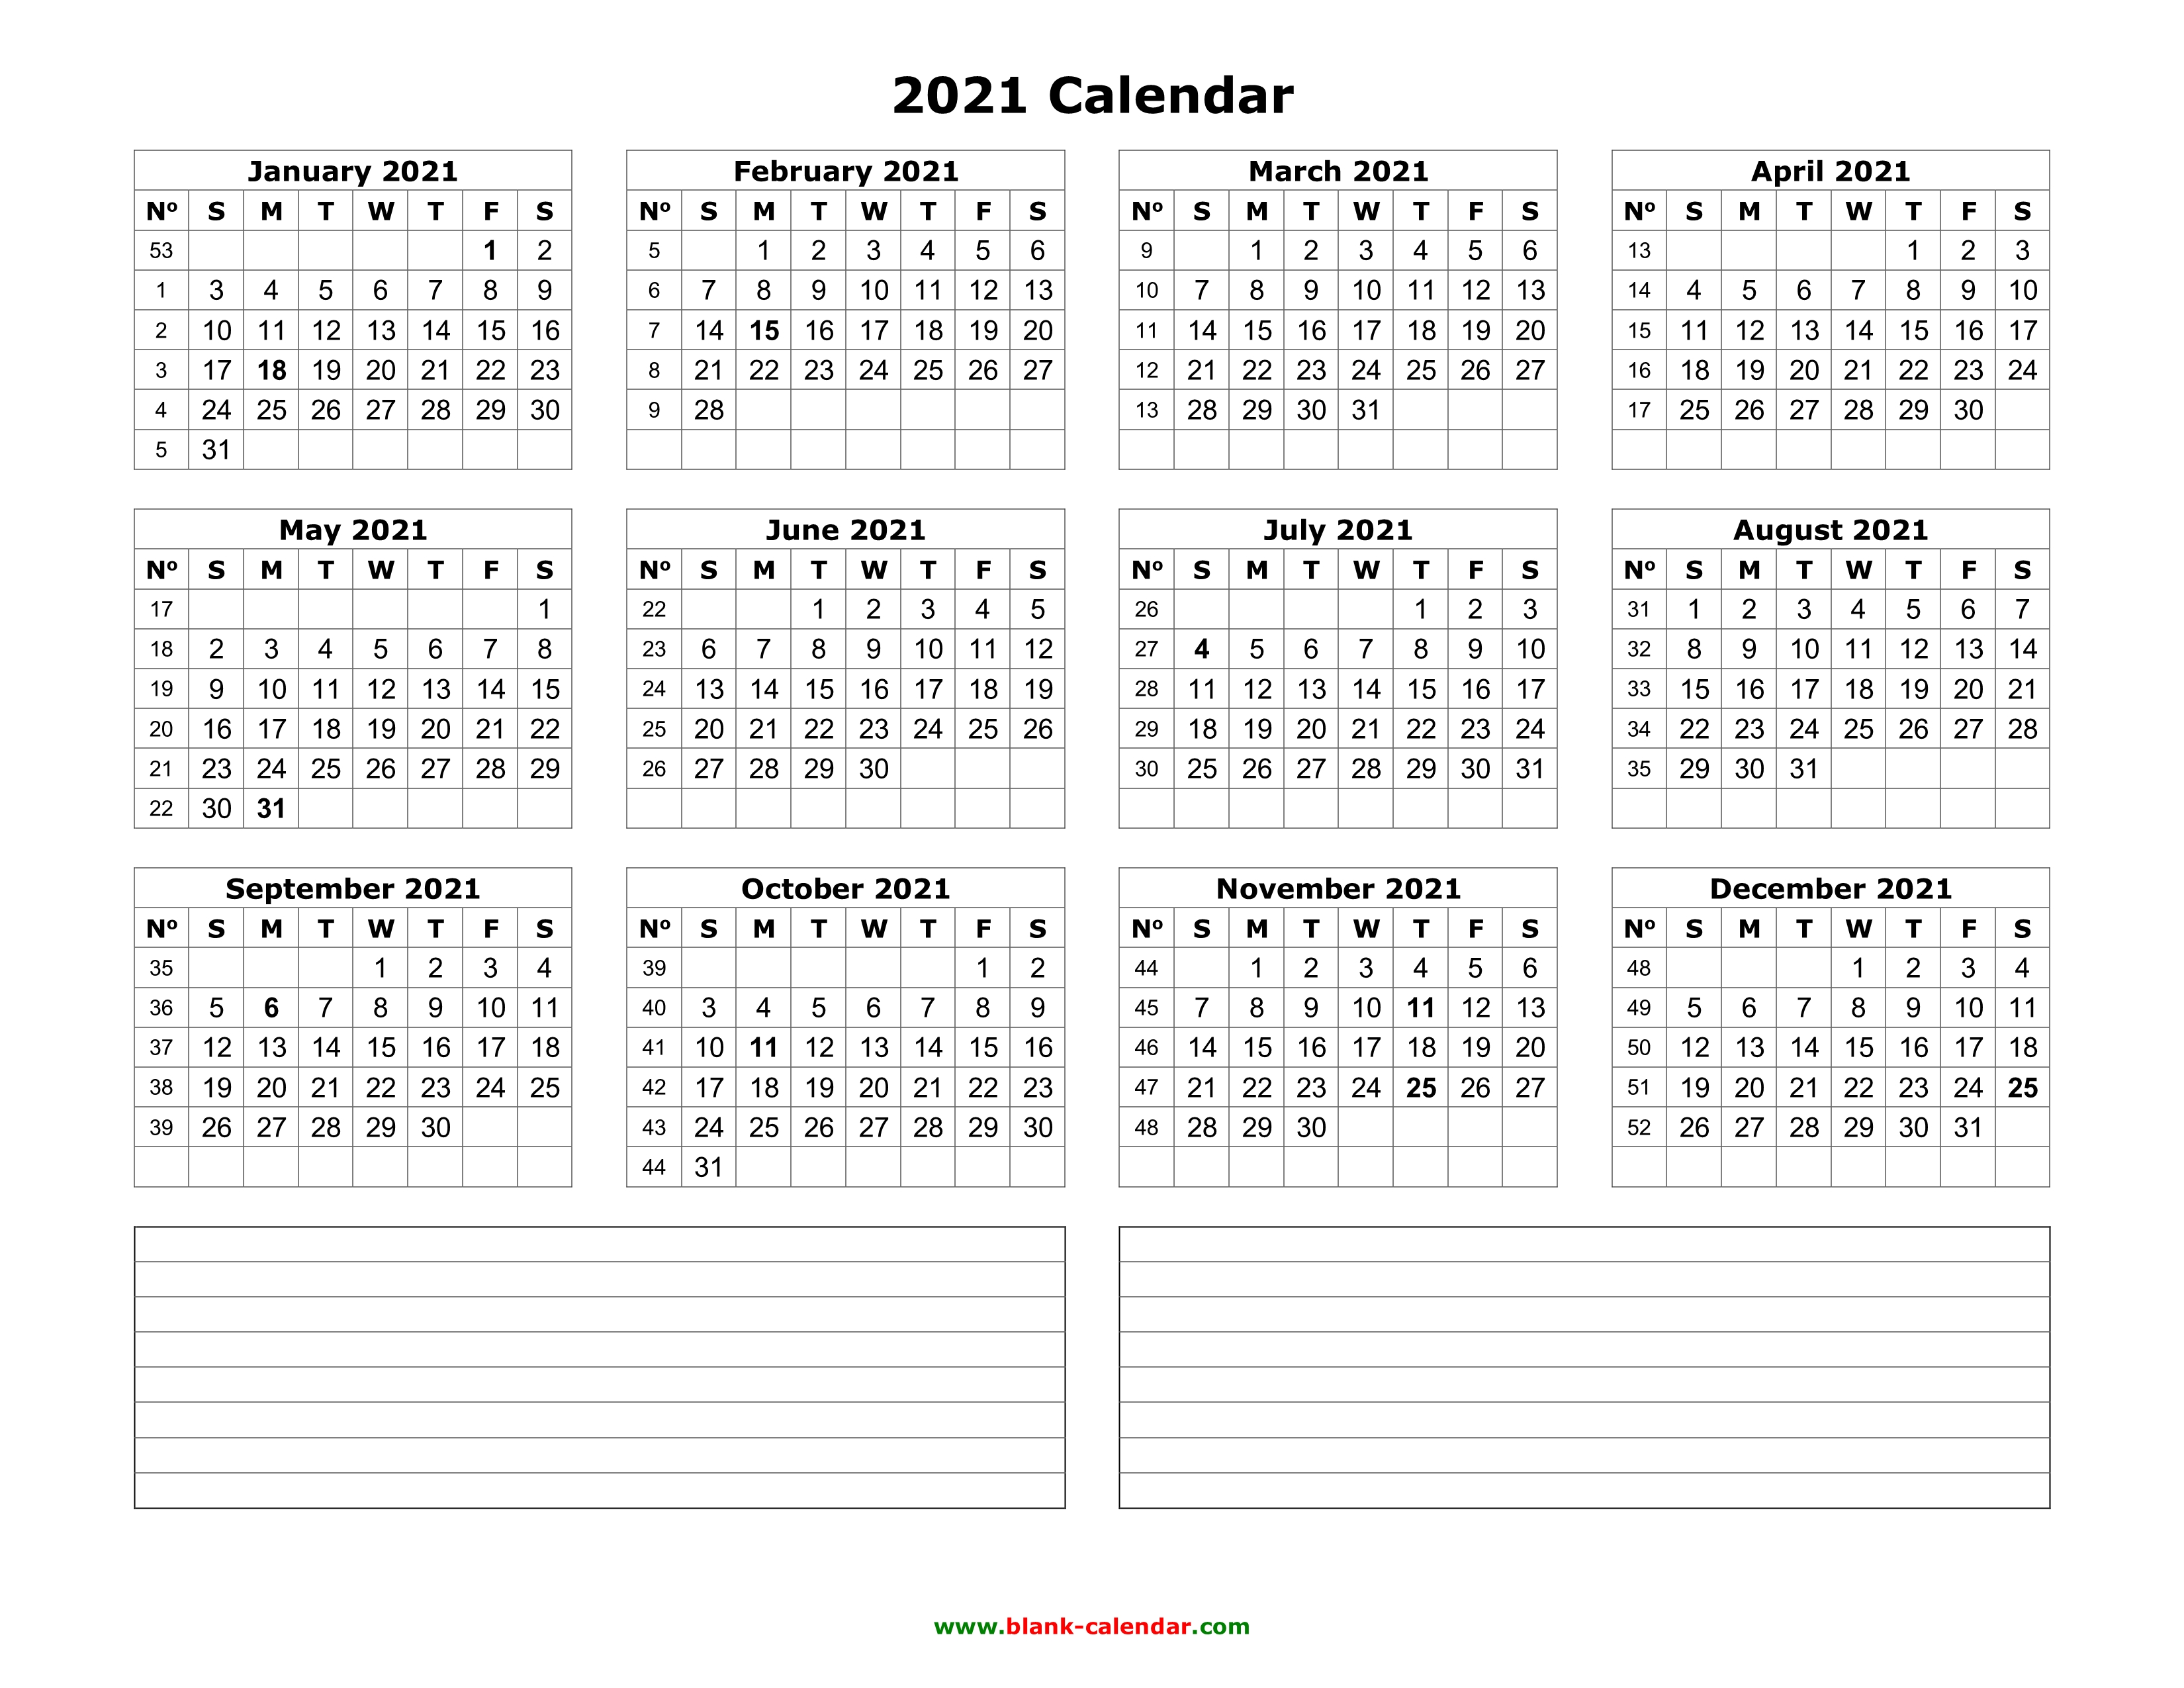 FREE Blank 2019 Calendar Templates   Download Now   Face ...